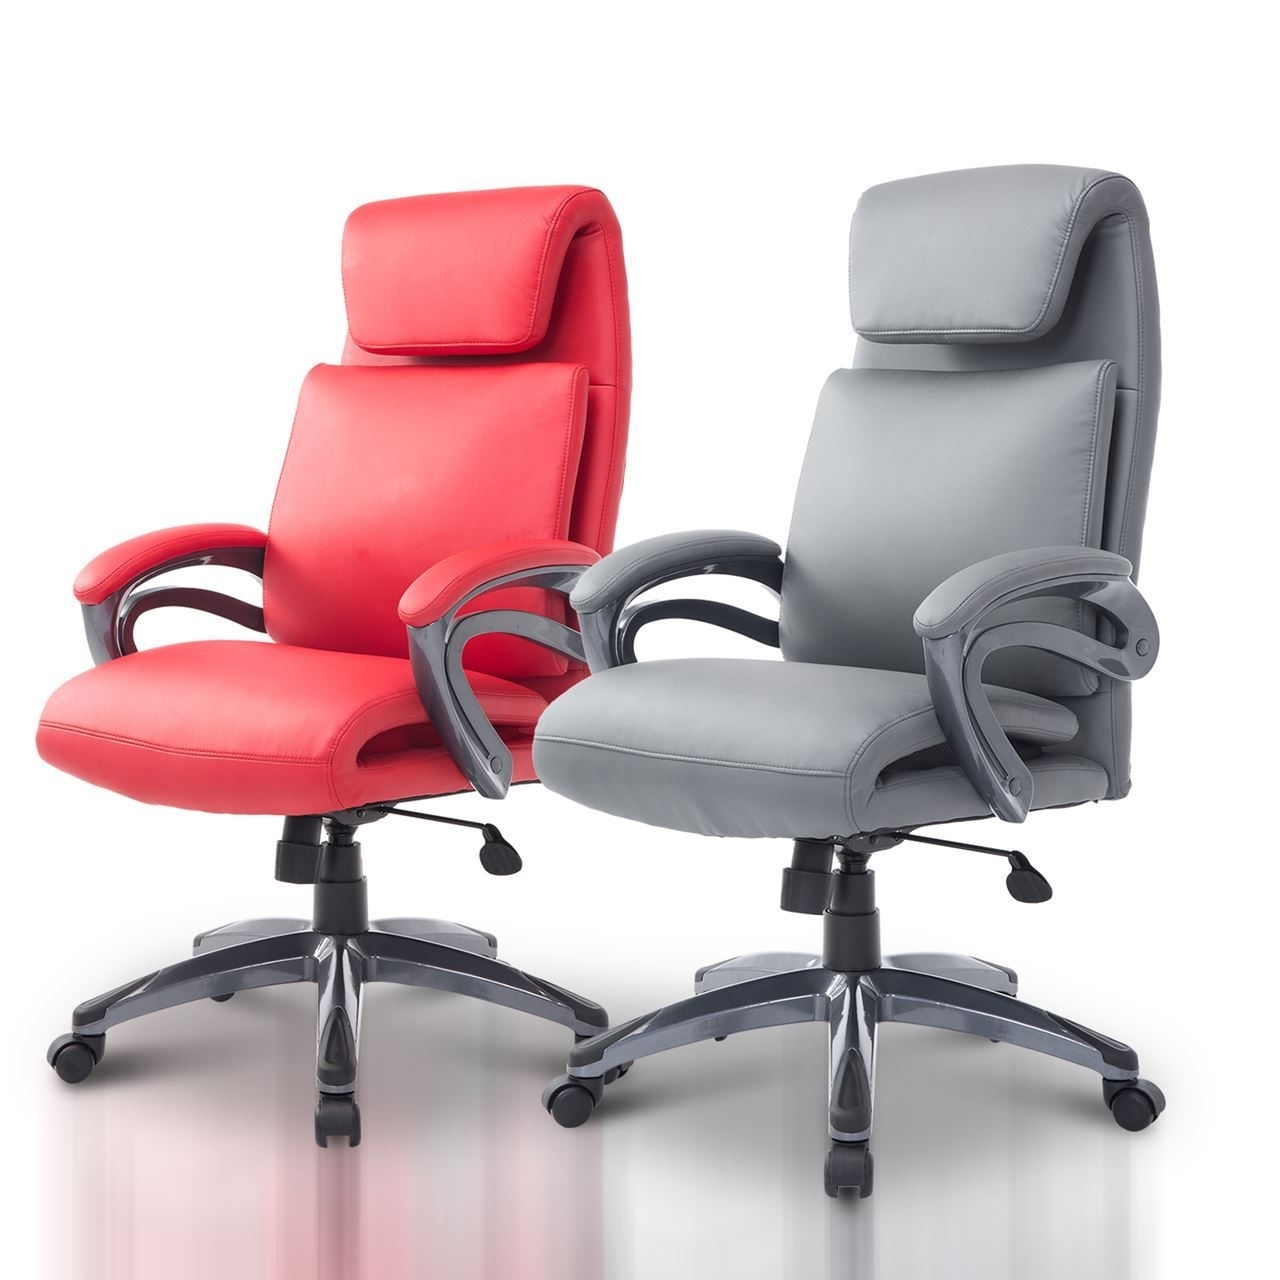 Executive Office Armchairs For Preferred Chair : Rolling Office Chair Best Ergonomic Chair Luxury Executive (View 3 of 20)